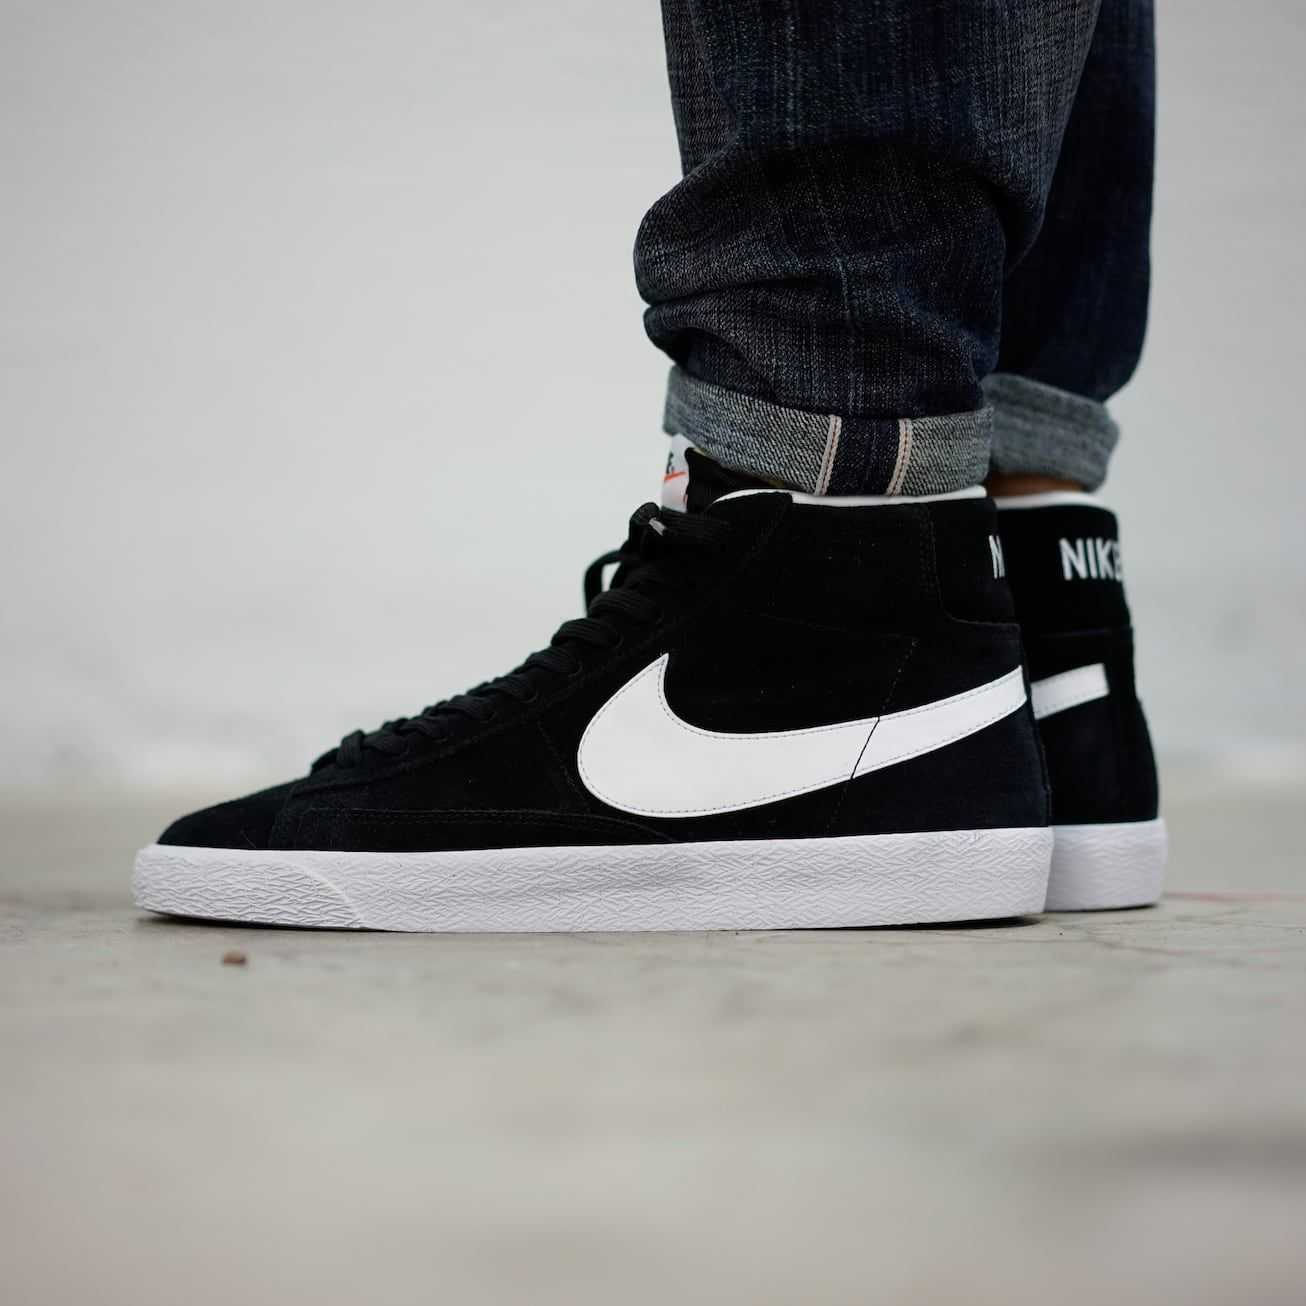 3d027bad814 Nike Blazer Mid Premium  The Iceman s favorite returns to bless your feet.  - EU Kicks Sneaker Magazine